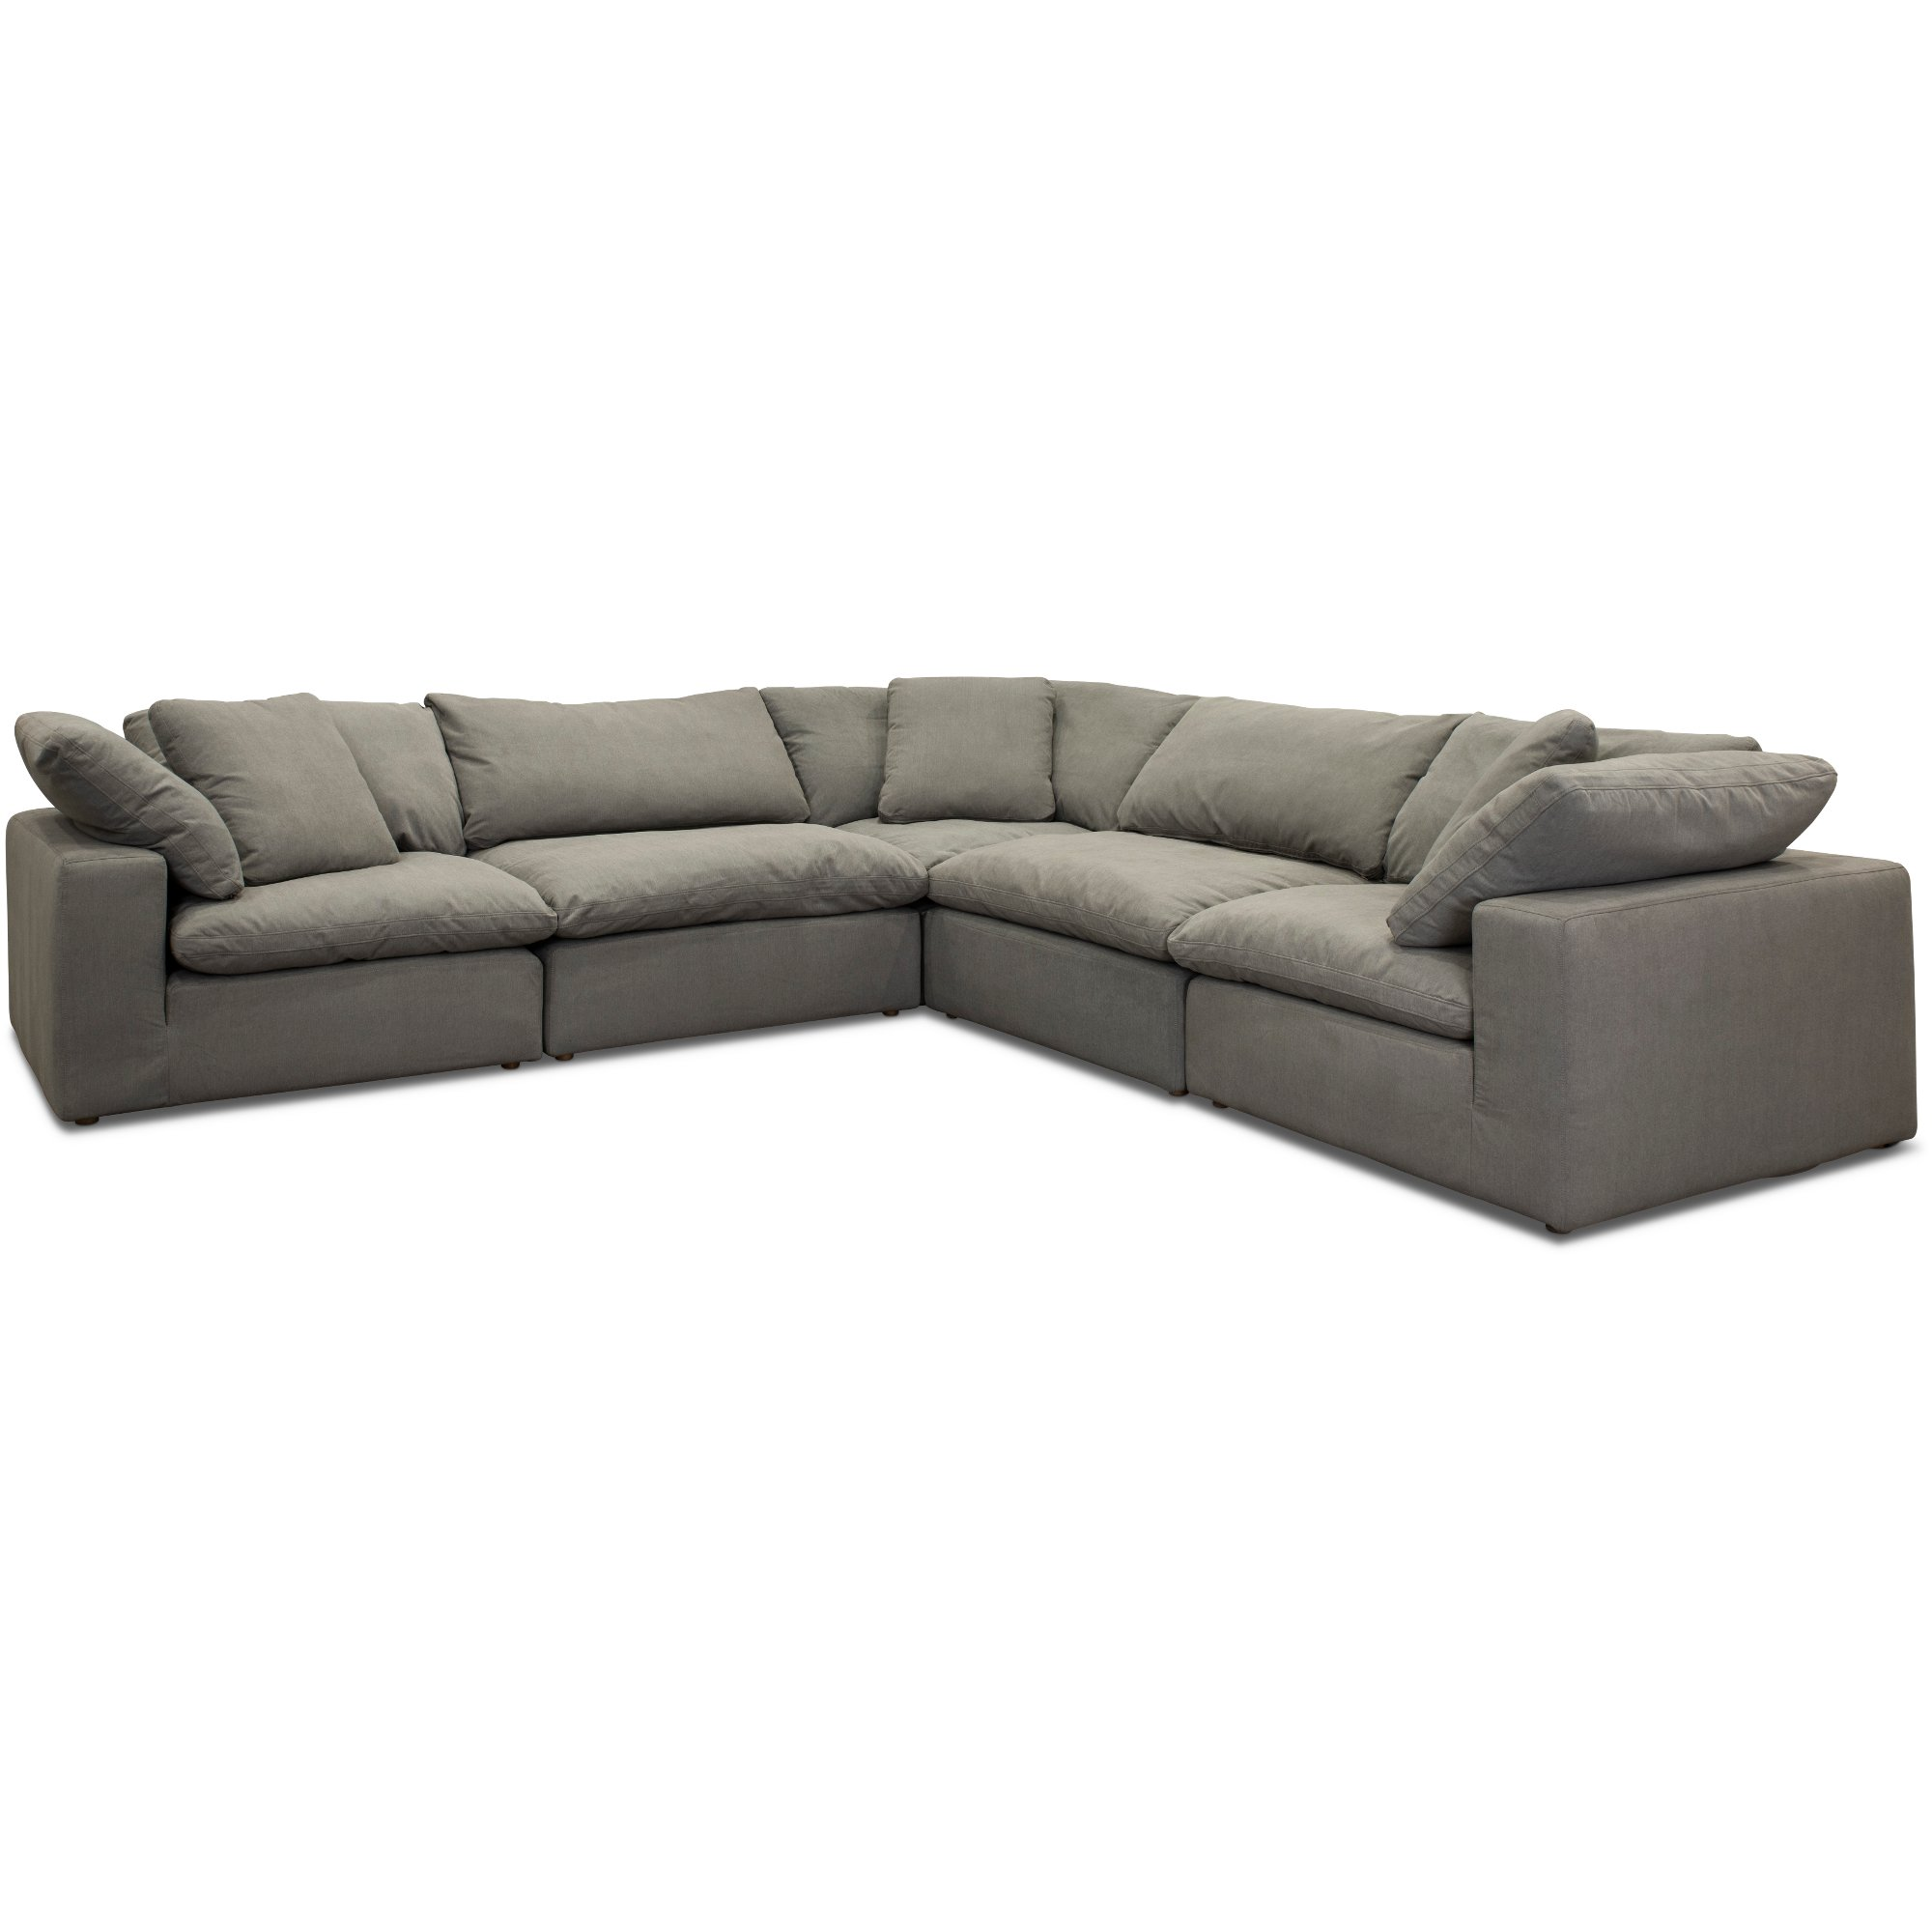 Attrayant Fullsize Of Furniture Stores Boise Large Of Furniture Stores Boise ...